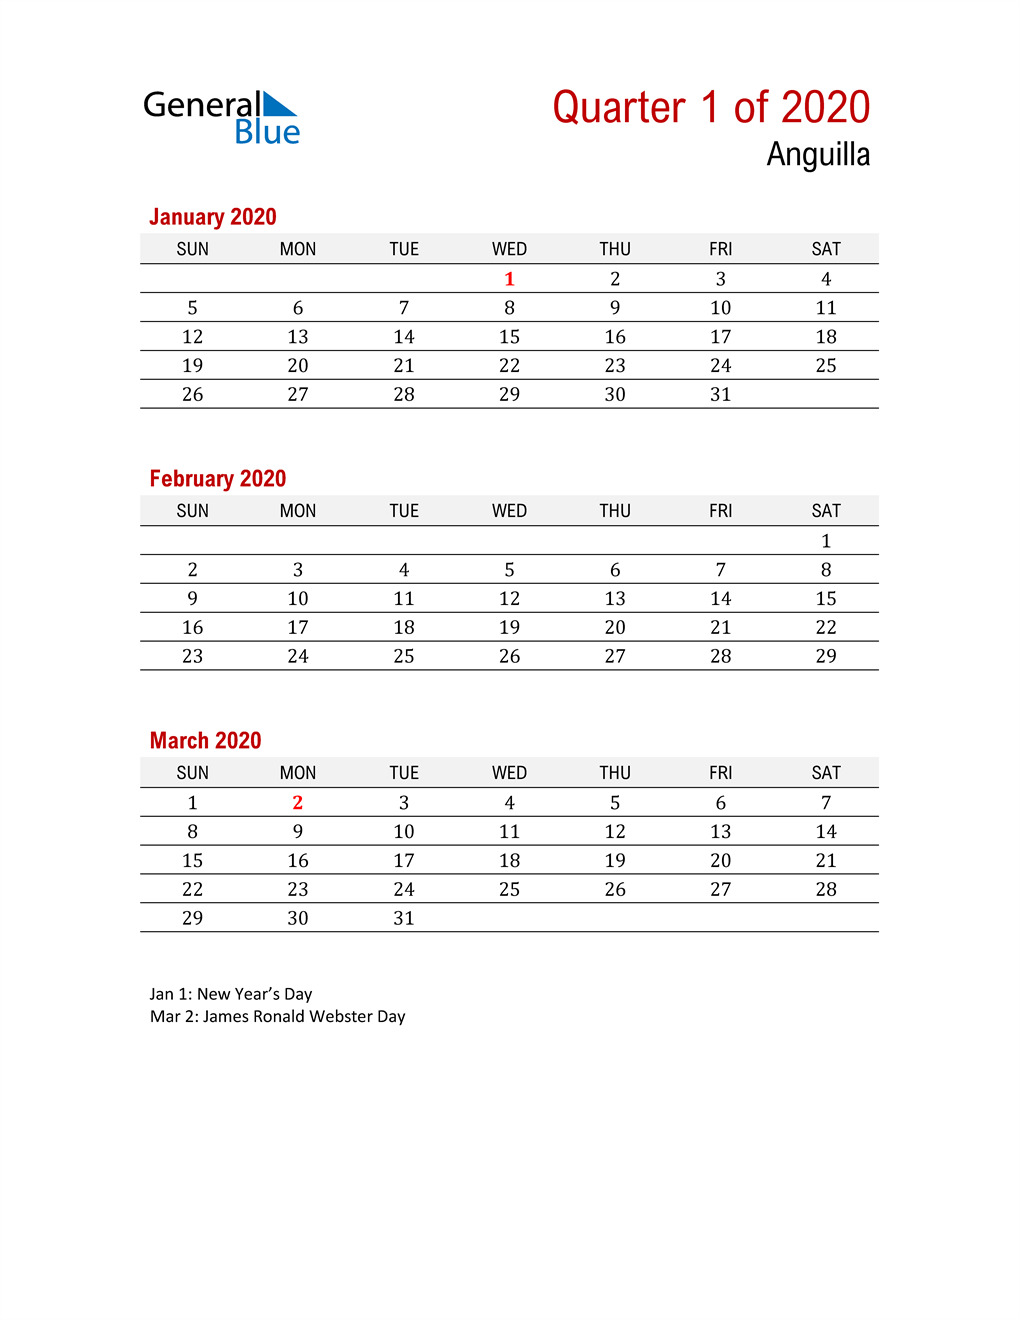 Printable Three Month Calendar for Anguilla